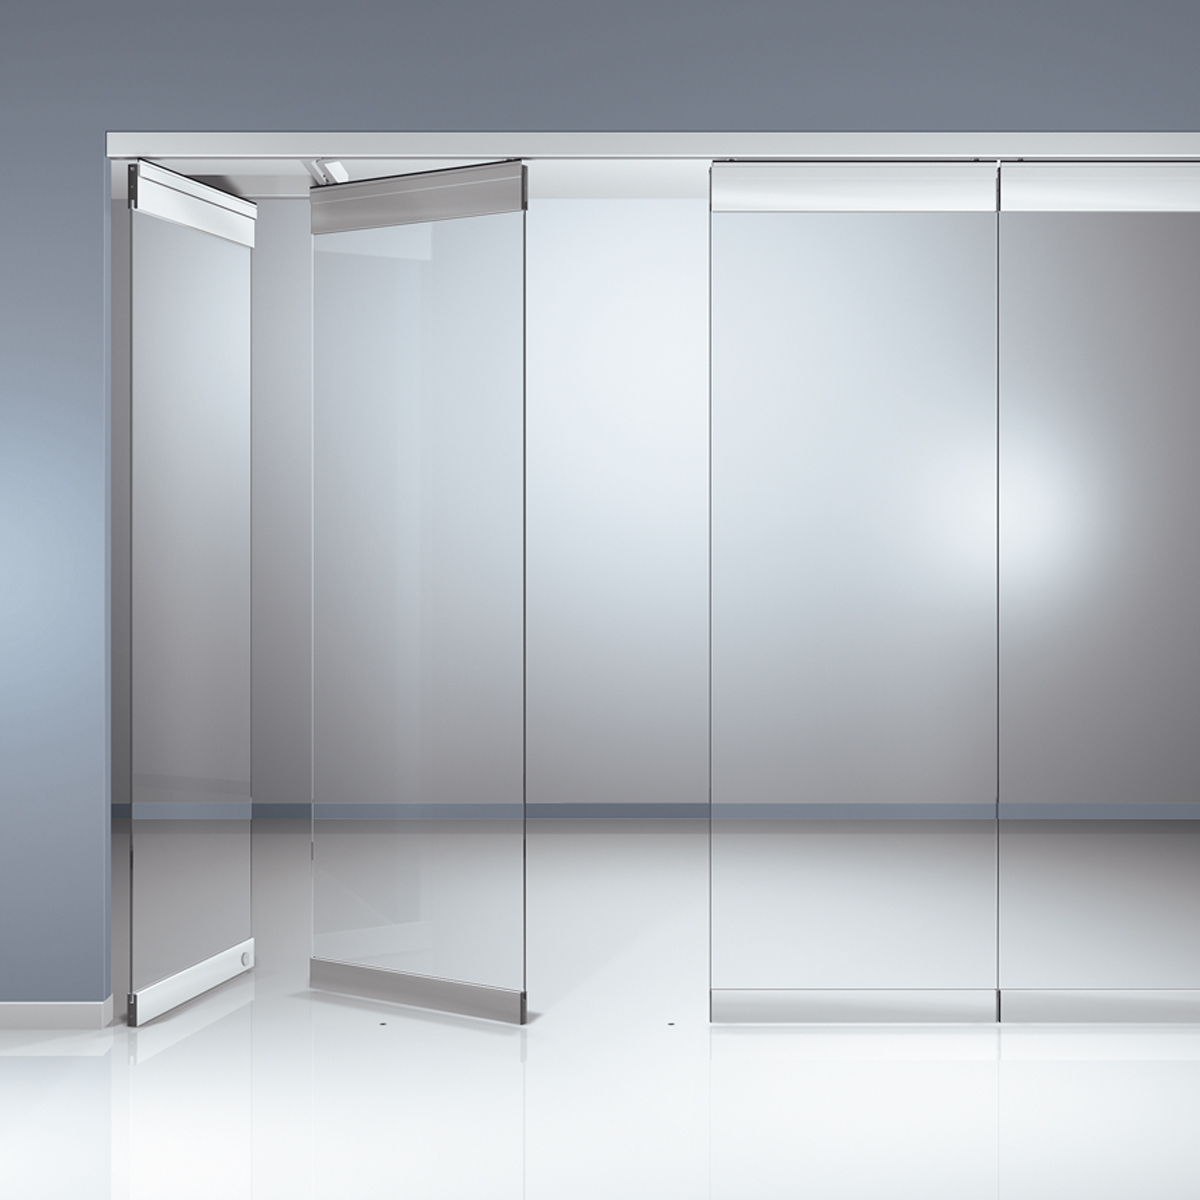 AA22- A horizontal sliding wall -Sliding glass Partition